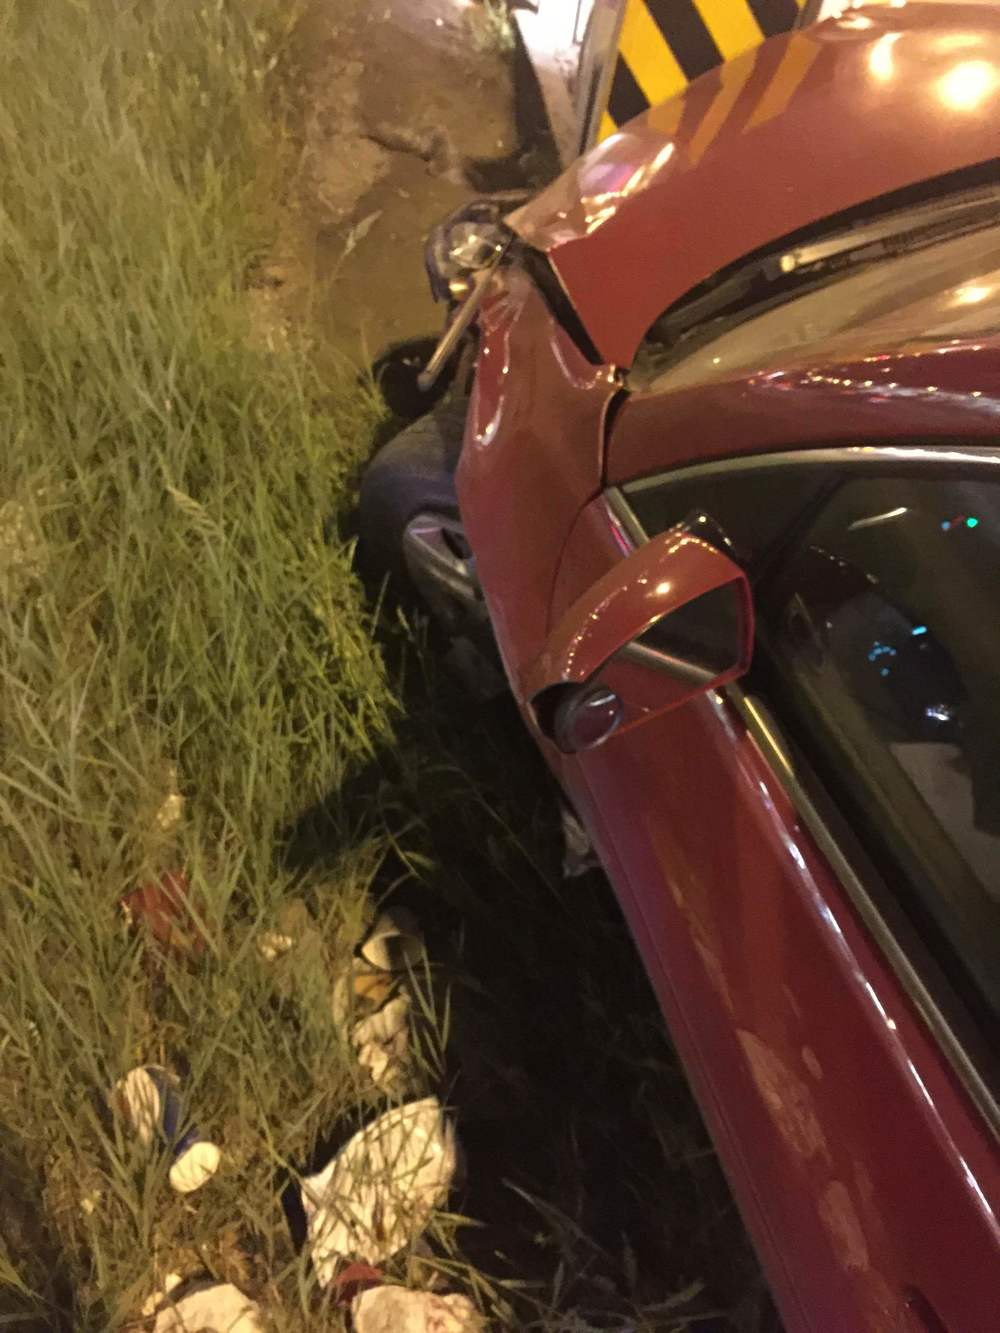 """The following message read: """"They were in an accident and the car was totaled. By the grace of God and Angels, they walked away from this with no scratches."""" Her son that was driving is 6'7"""", and her other son that was in the passenger seat is 6'3"""".  I thought to myself """"Wow, they were lucky, especially considering how tall they are, to walk away from the accident with no scratches.""""  As I looked at the pictures again, my eyes gravitated toward two pennies in the driver's seat. Pennies are signs from loved ones in Heaven. I instinctively knew they had been protected. A few days before the car accident, her family had plans to visit the gravesite of a deceased loved one, Shaunda. Shaunda was a police officer who passed away in February 2013 from a fatal car accident. My thoughts raced to the notion of Shaunda protecting them. Often, when deceased loved ones are around, you will think of them suddenly, hear their favorite song on the radio or find pennies when they are near.   As Amanda Linette Meder explains in her article titled, Pennies from Heaven: Why does my deceased loved one visit me with coins?  """"Currency, and in this case, small coins, is one of the main ways that humans communicate value to each other. We exchange money for work, money for goods, money for services, and even money for time. We are always expressing what we care about, what we value, in the form of providing the gift of currency. When your loved one visits you by sending small coins to appear in your path, it is a major sign: meaning: you are highly valued. Coins and currency that are used as signs from your loved one are most commonly in the rates of """"1s"""" or """"10s"""", unless, of course, you have a standing inside joke about nickels with a particular grandfather! So why pennies, and why dimes? Pennies and dimes are symbolic of a few spiritual principles, and the messages they send are significant. The meaning of the number 1 is significant, as number one is usually associated with the sense of """